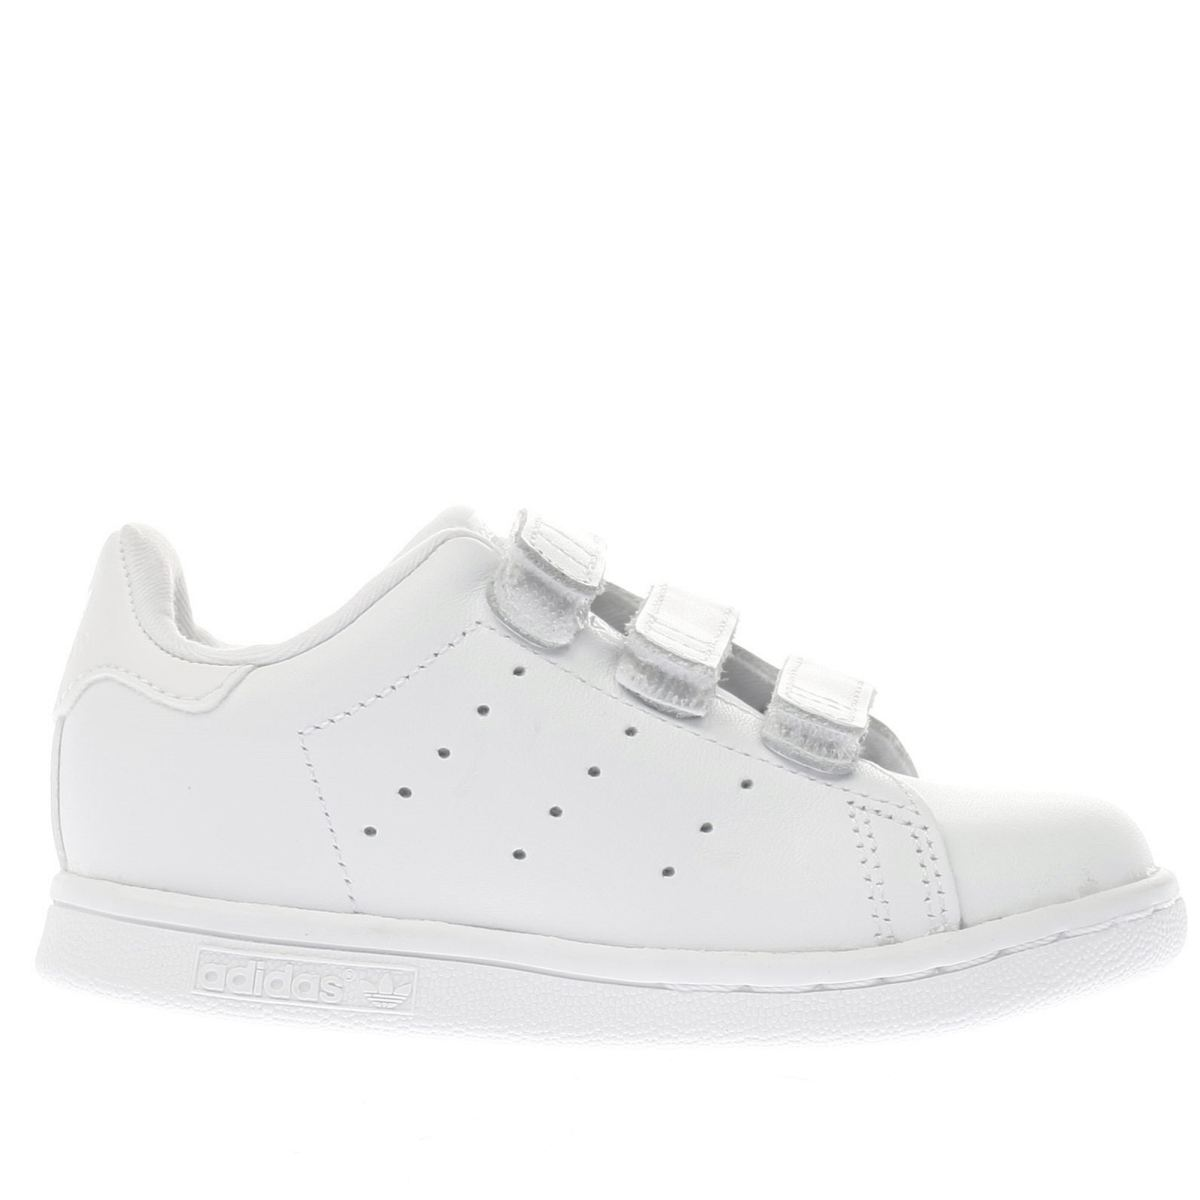 adidas white stan smith Toddler Trainers